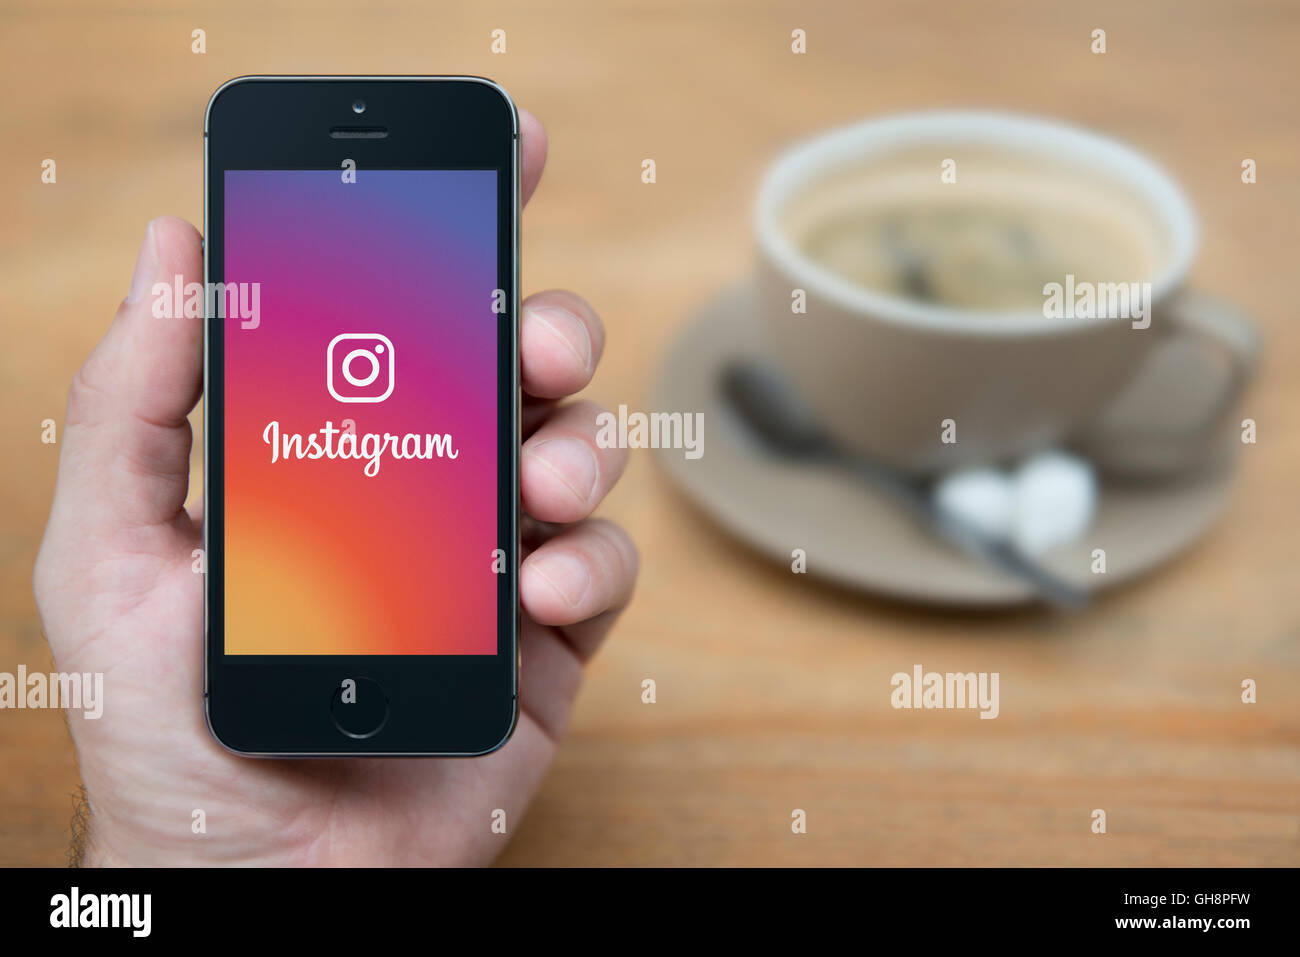 A man looks at his iPhone which displays the Instagram logo, while sat with a cup of coffee (Editorial use only). - Stock Image